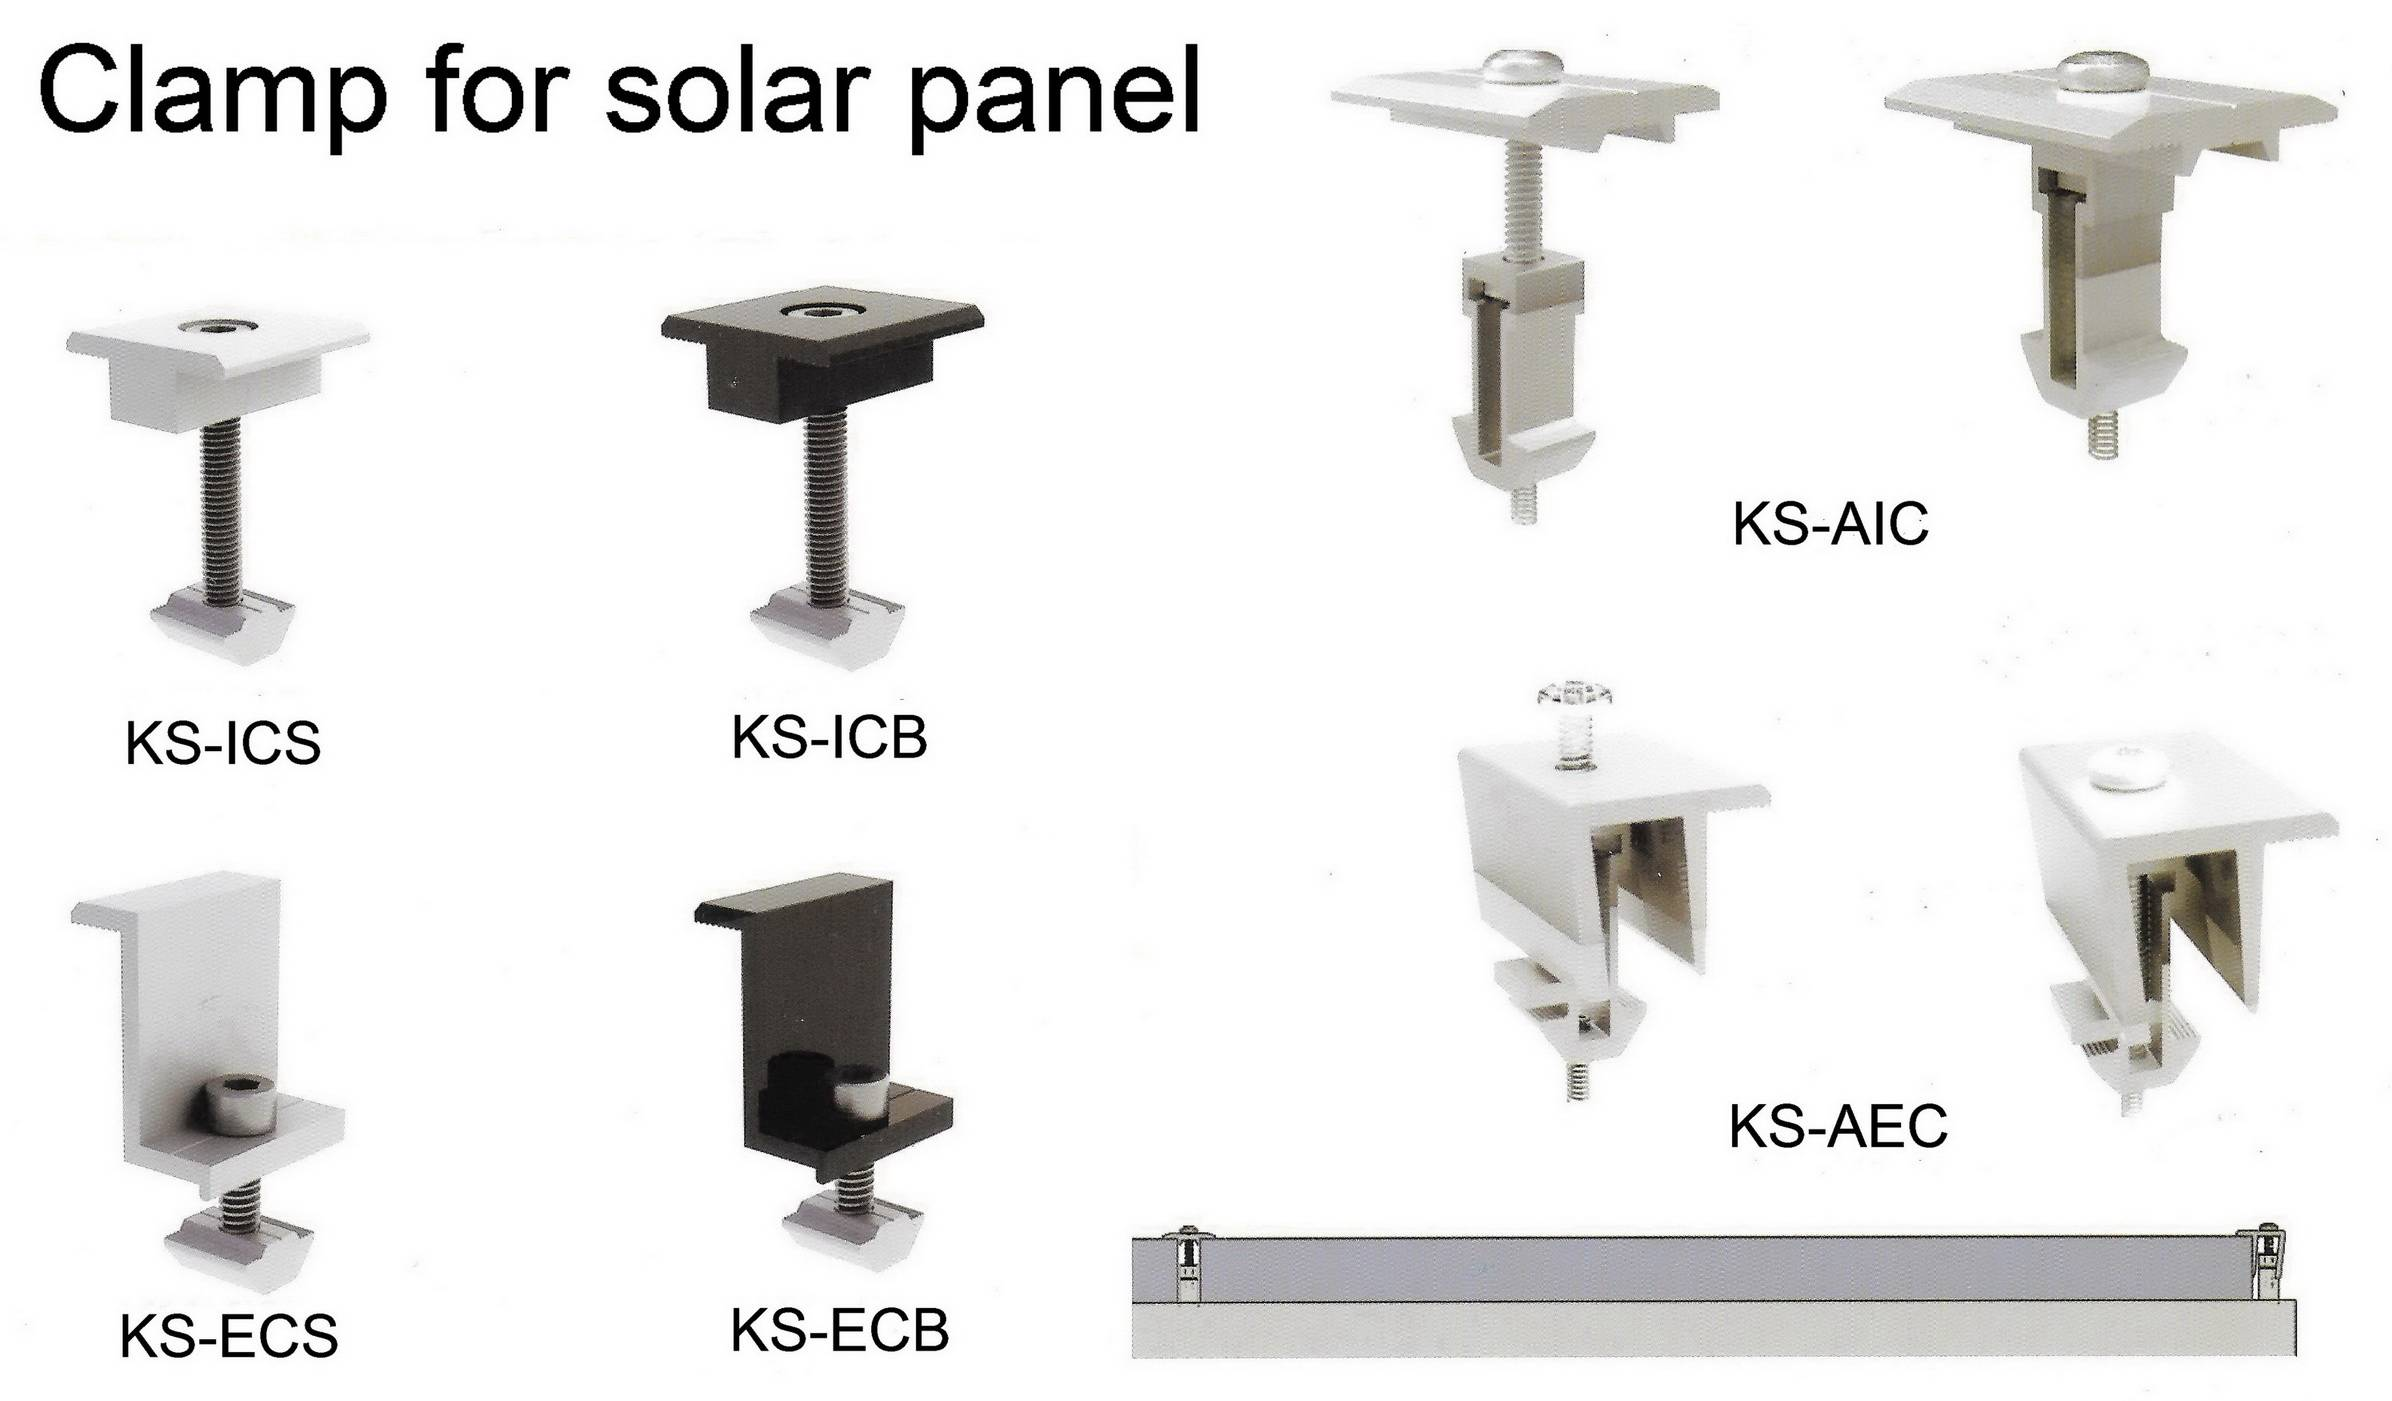 clamps for solar panels